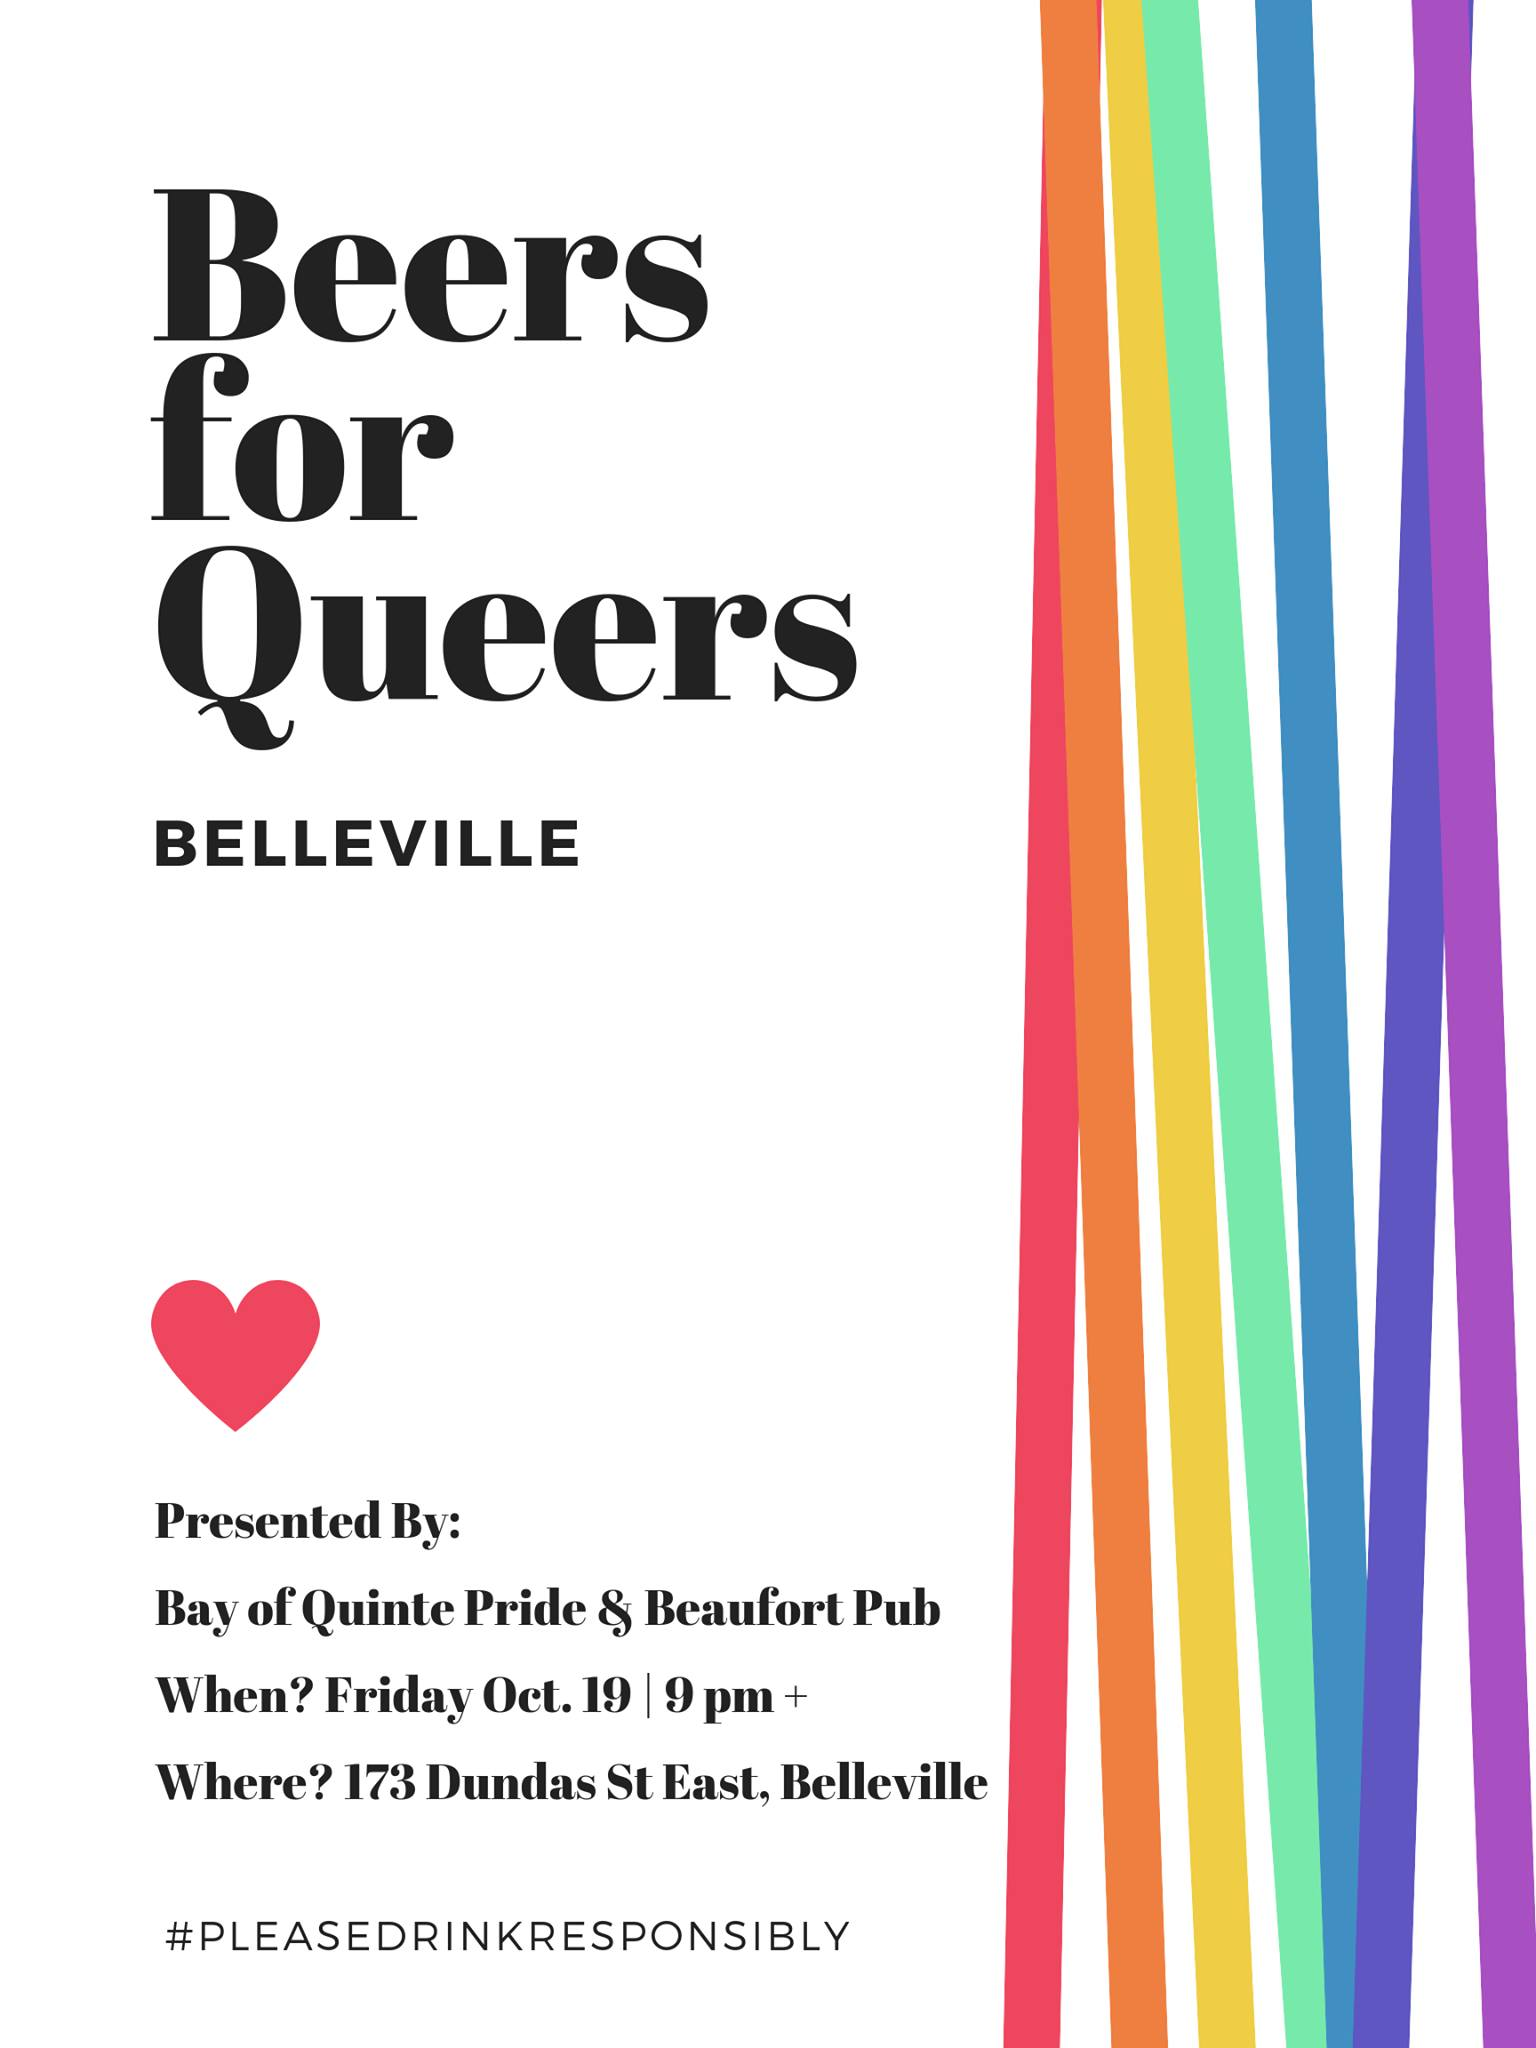 beers for queers belleville pride